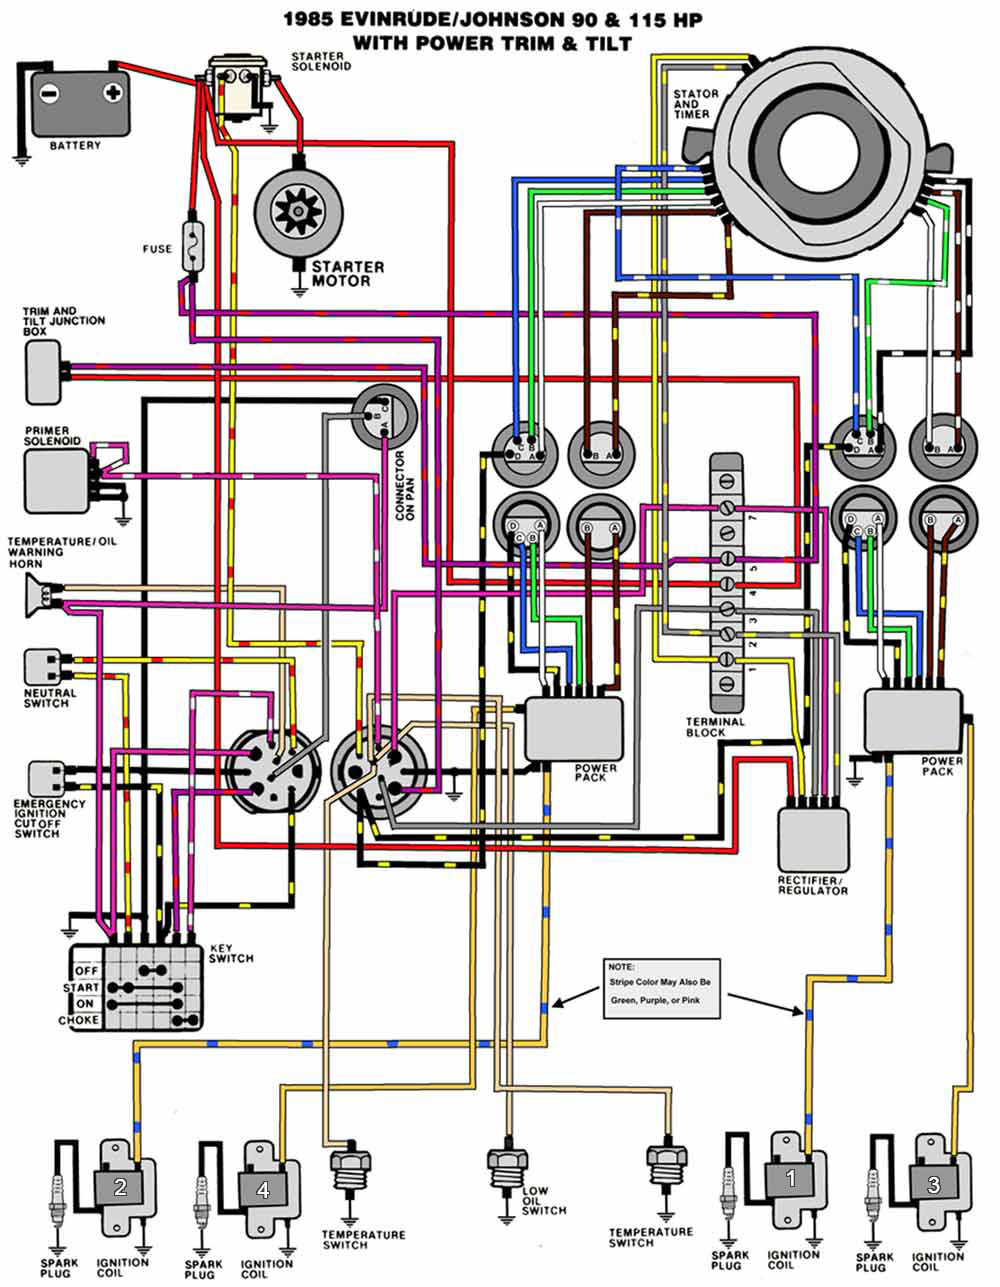 wiring diagrams 1975 johnson 40 hp motor - x13 motor schematic for wiring  diagram schematics  wiring diagram schematics